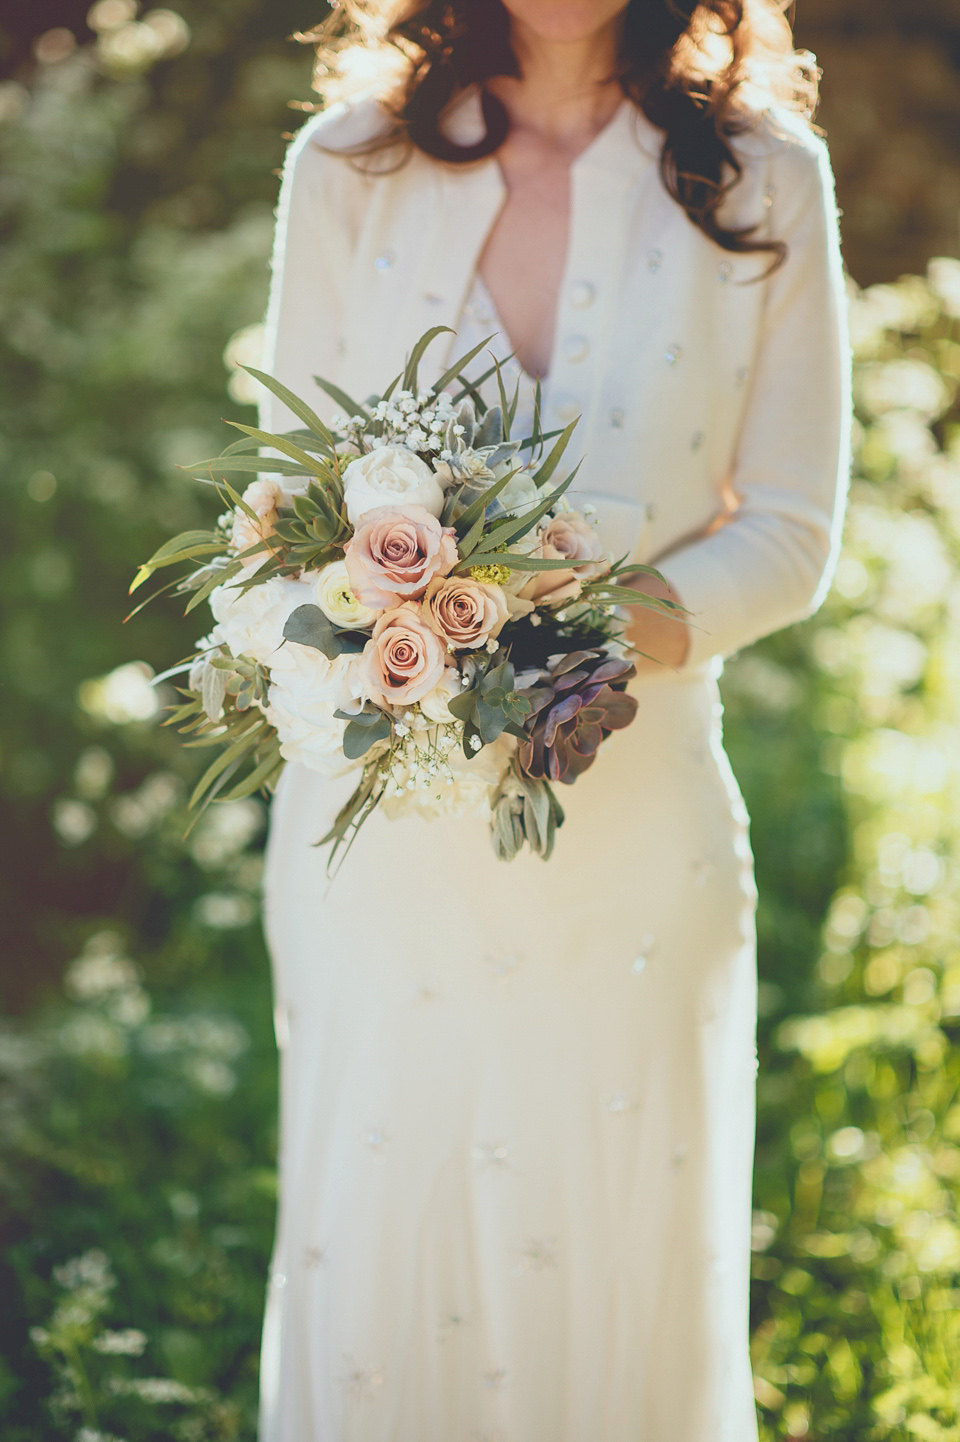 Jenny Packham for a Classic English Spring wedding with a Vintage French Twist (Weddings )